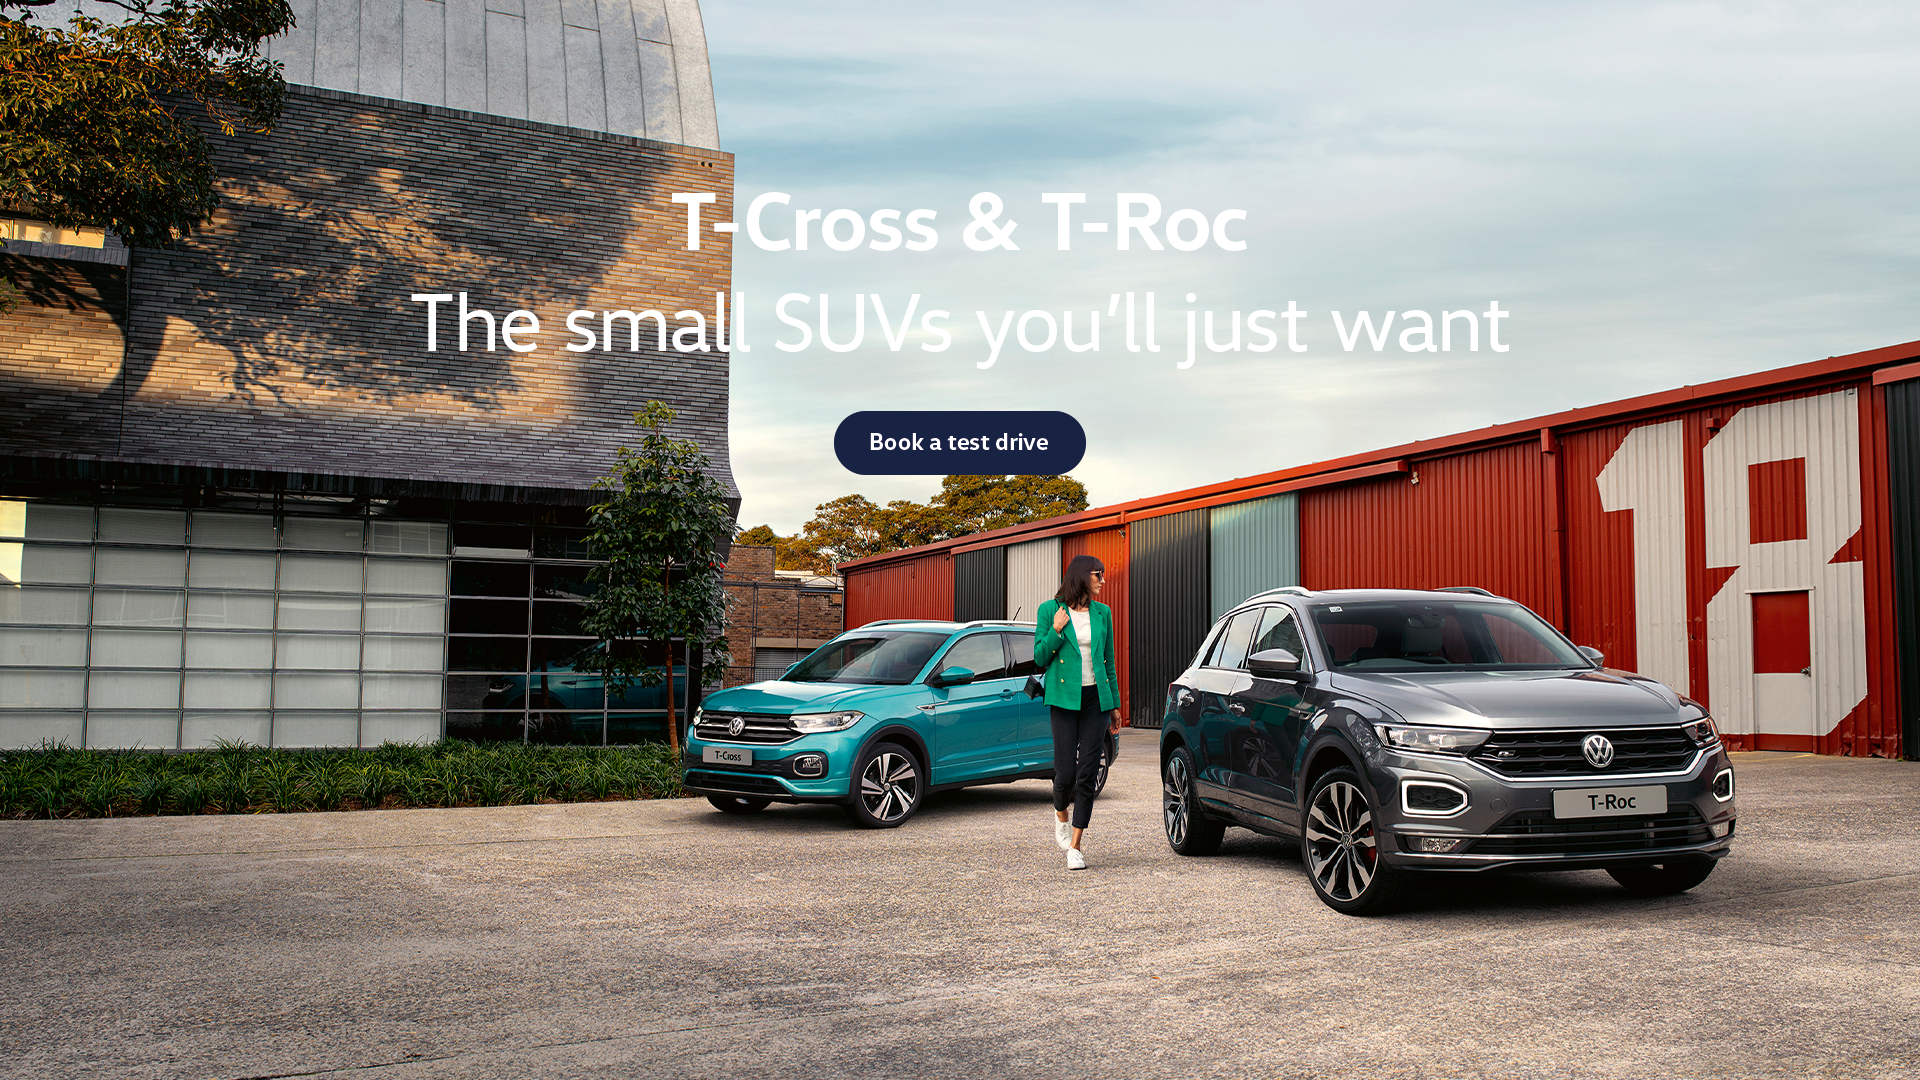 Volkswagen Small SUV range. Test drive today at Castle Hill Volkswagen